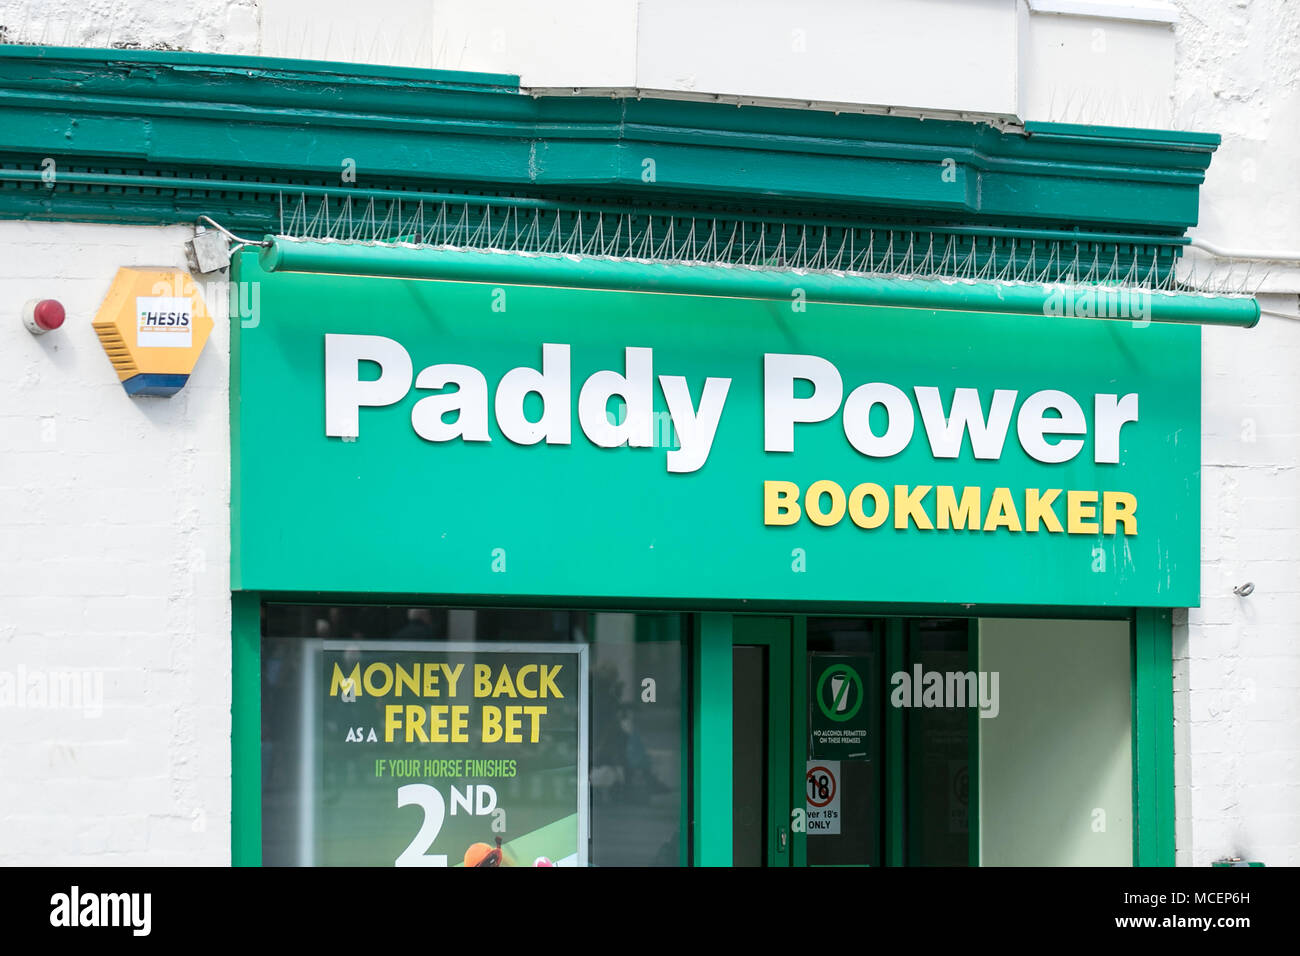 Paddy Power bookmaker bookmakers bookies betting shop - Stock Image